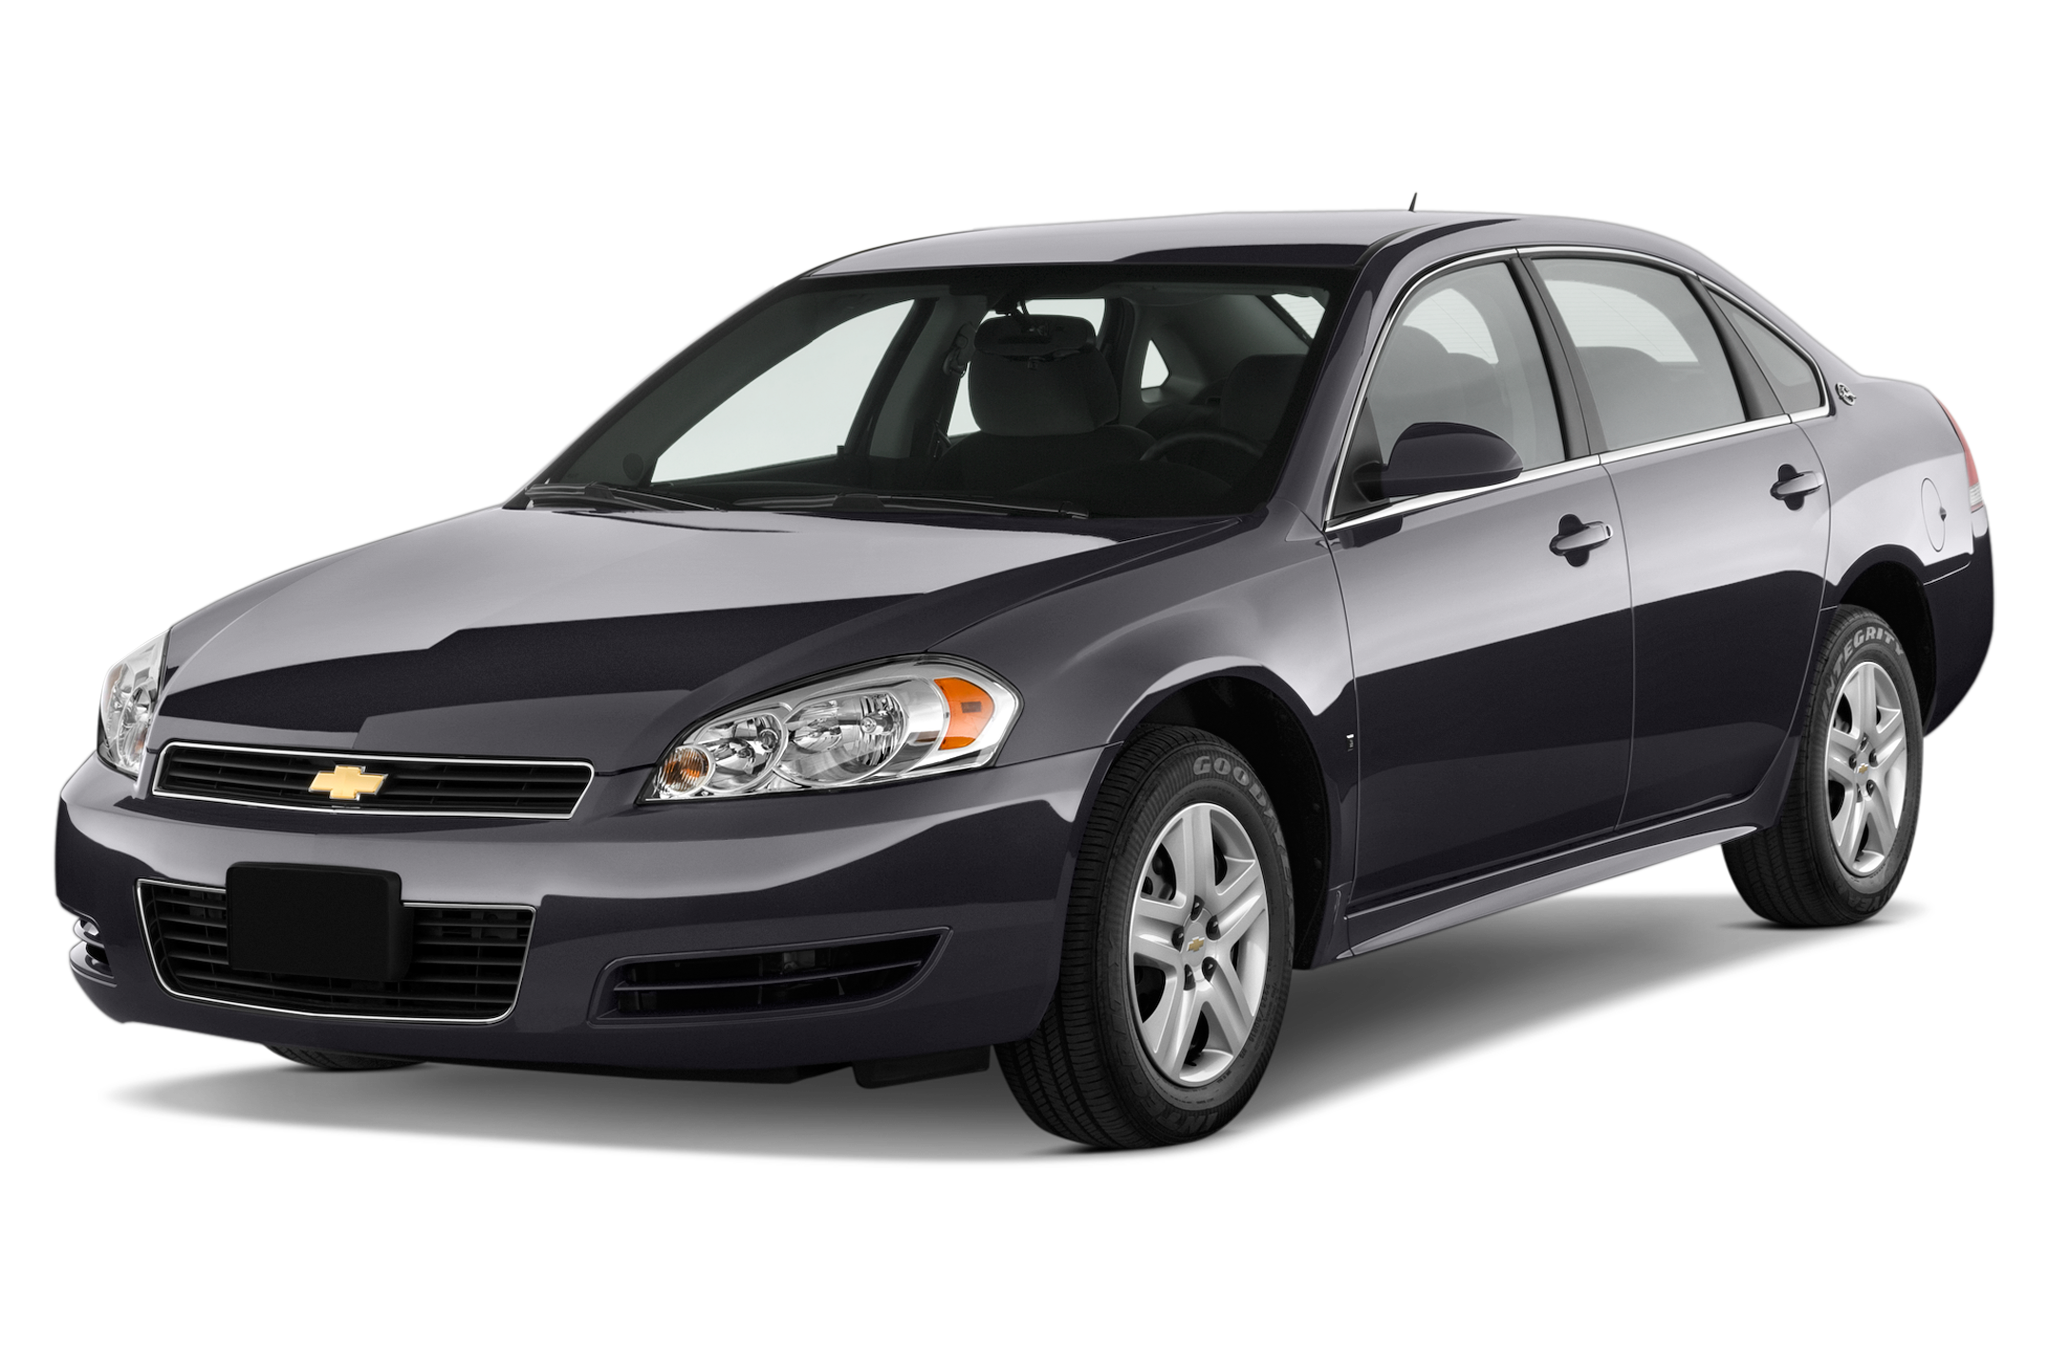 upgraded 2012 chevy impala to continue serving as police car. Black Bedroom Furniture Sets. Home Design Ideas